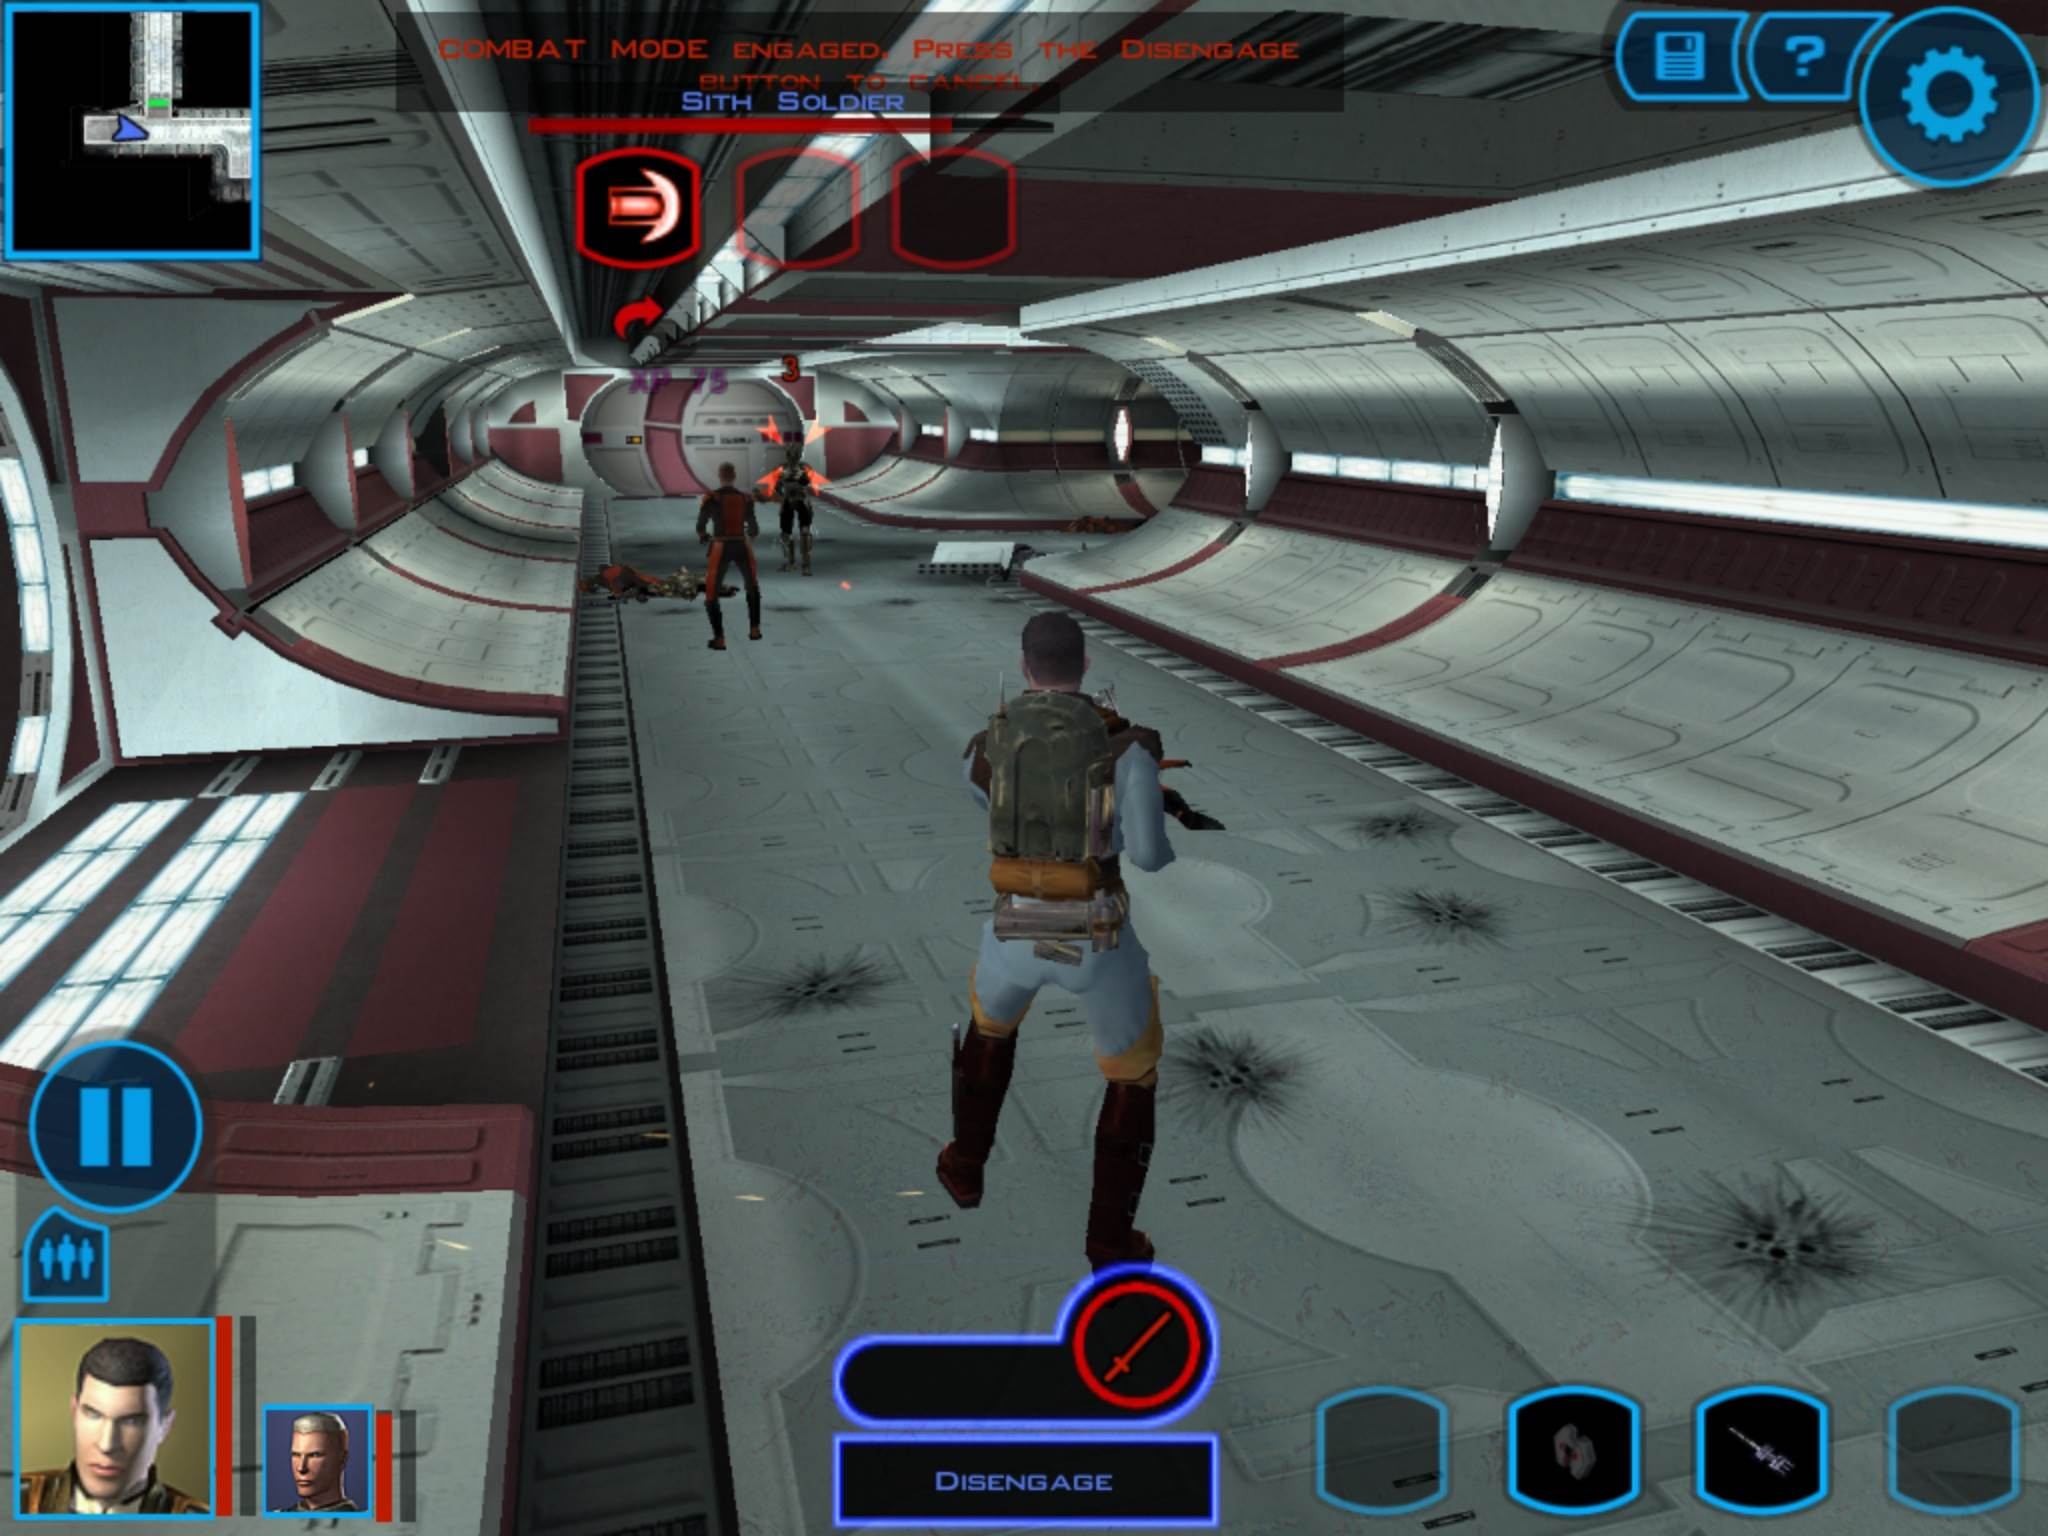 Star-Wars-Knights-of-the-Old-Republic-inGame-Tela-1 STAR WARS: Knights of The Old Republic ganhará versão para iPad